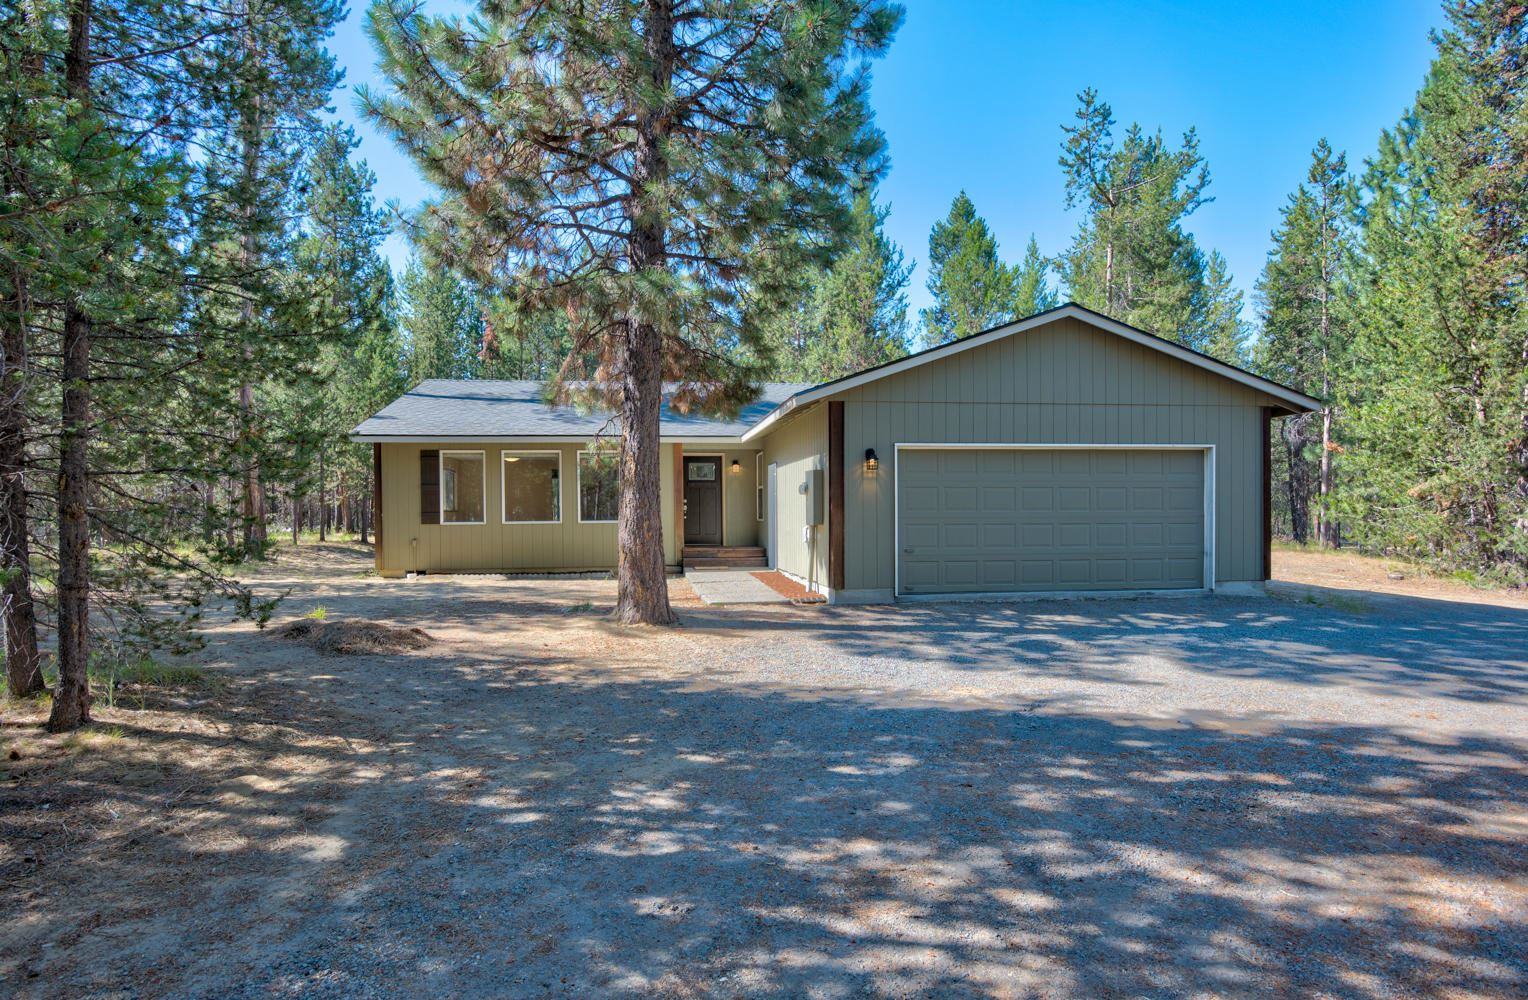 Photo of 15791 Sparks Drive, La Pine, OR 97739 (MLS # 220105738)